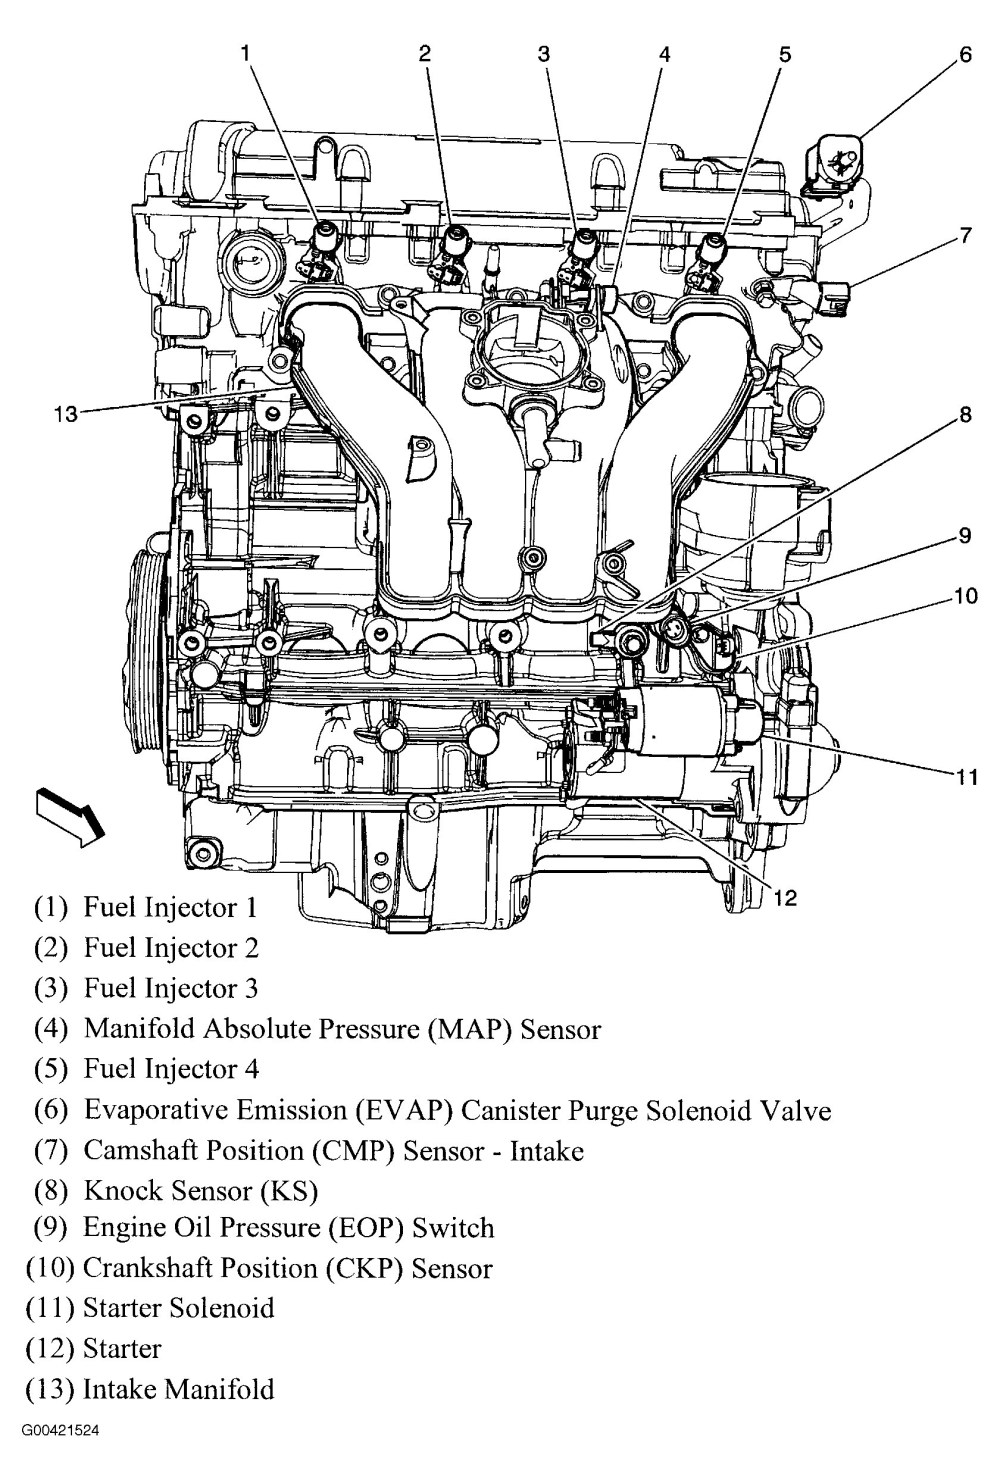 medium resolution of 2009 cobalt ss engine diagram wiring diagram forward 2009 chevy cobalt engine diagram wiring diagram forward